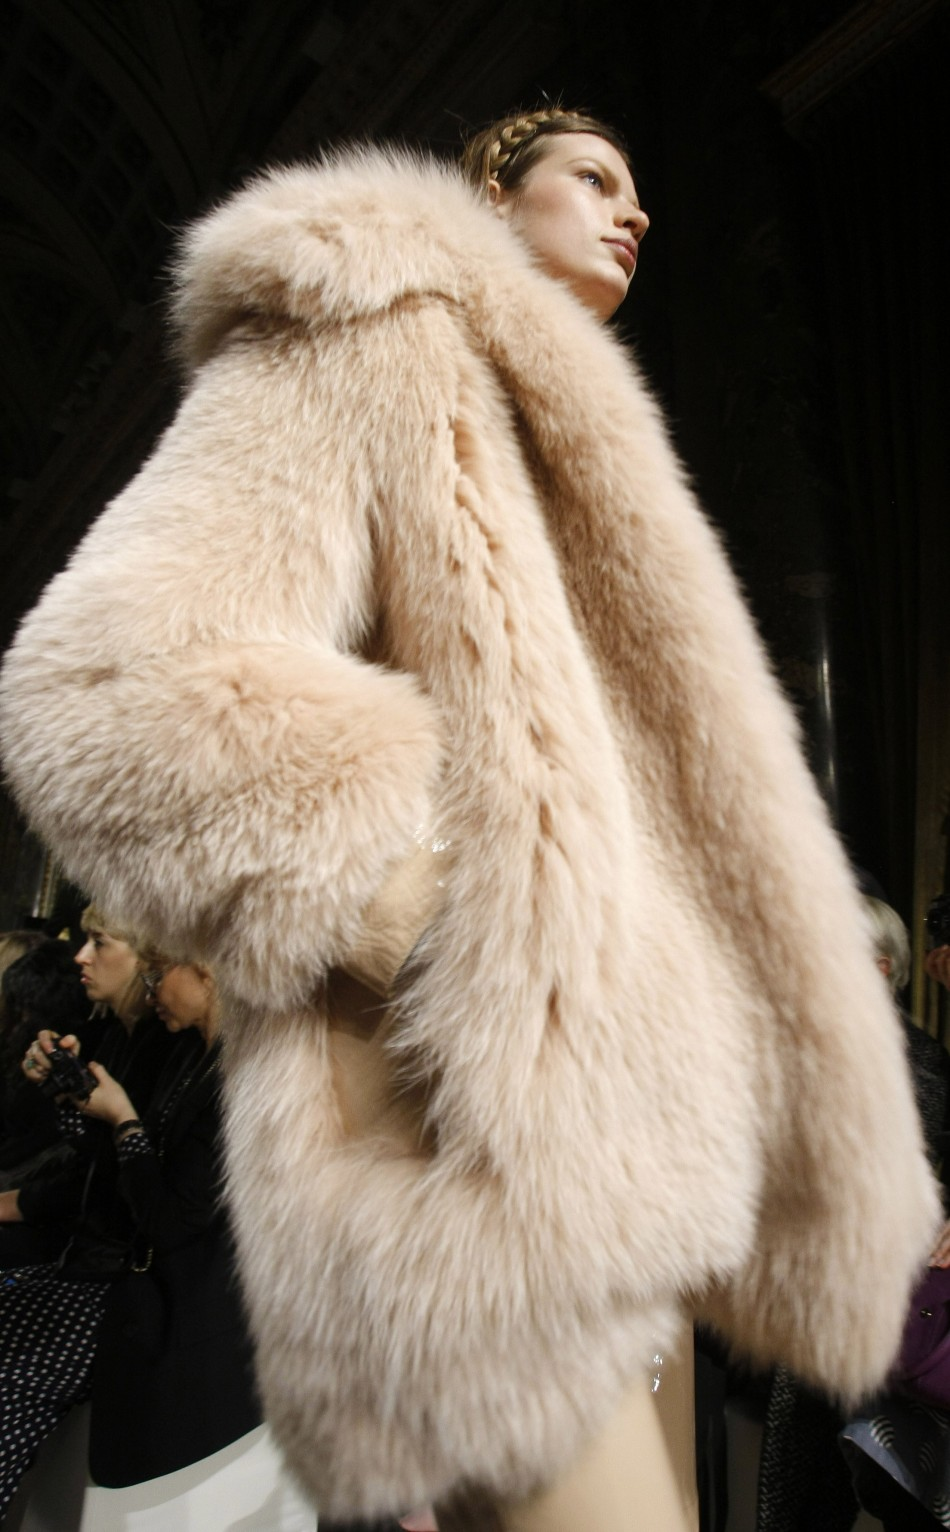 Rising demand in the far east has seen an increase in fur sales.